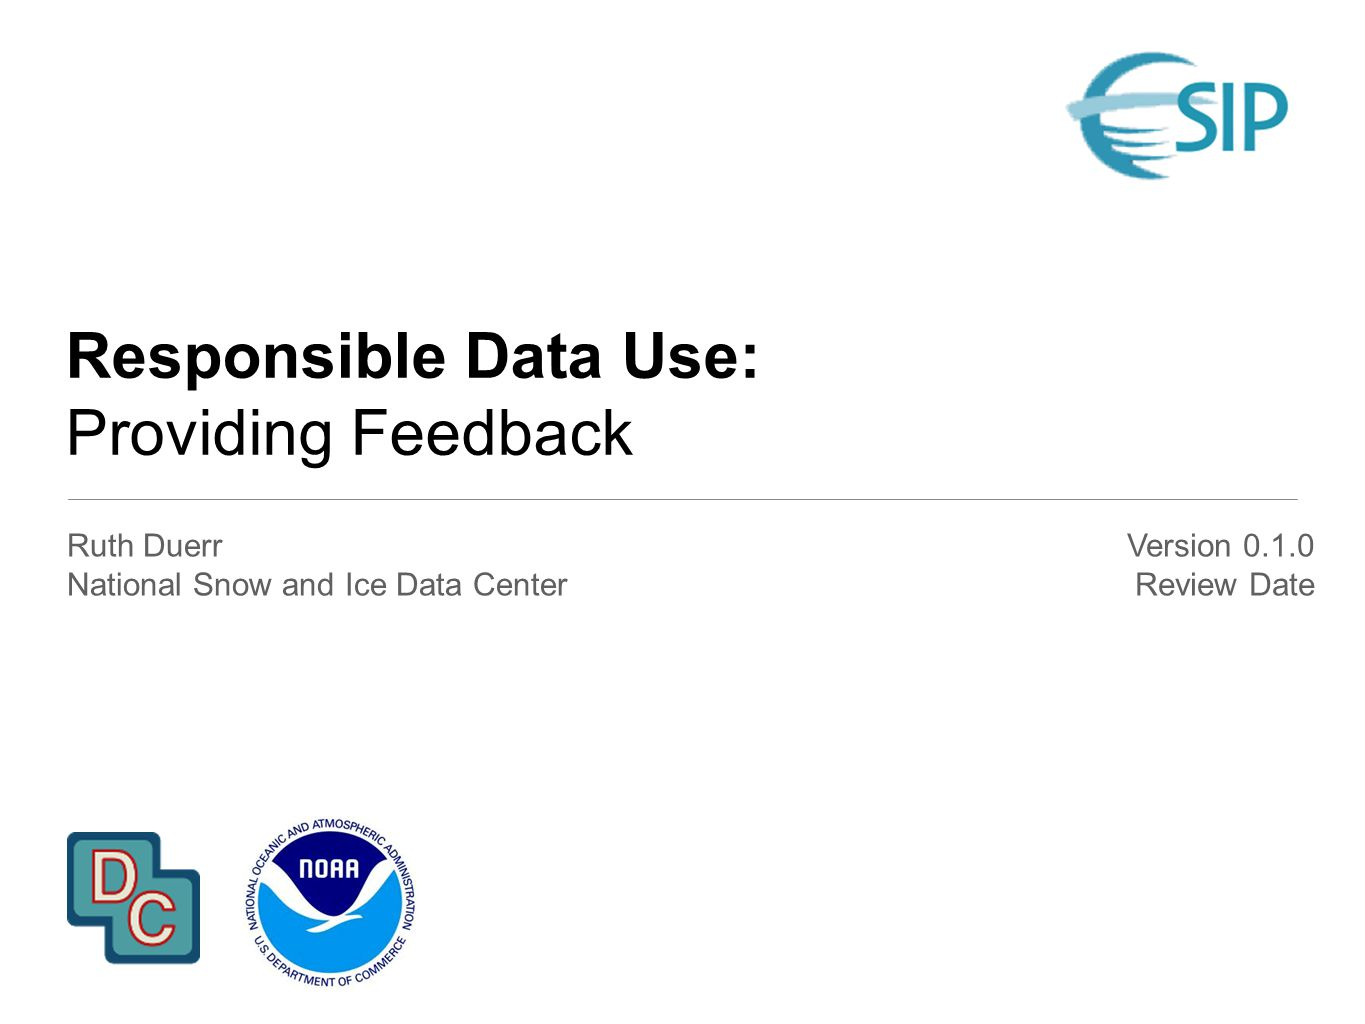 Responsible Data Use: Providing Feedback Ruth Duerr National Snow and Ice Data Center Version 0.1.0 Review Date